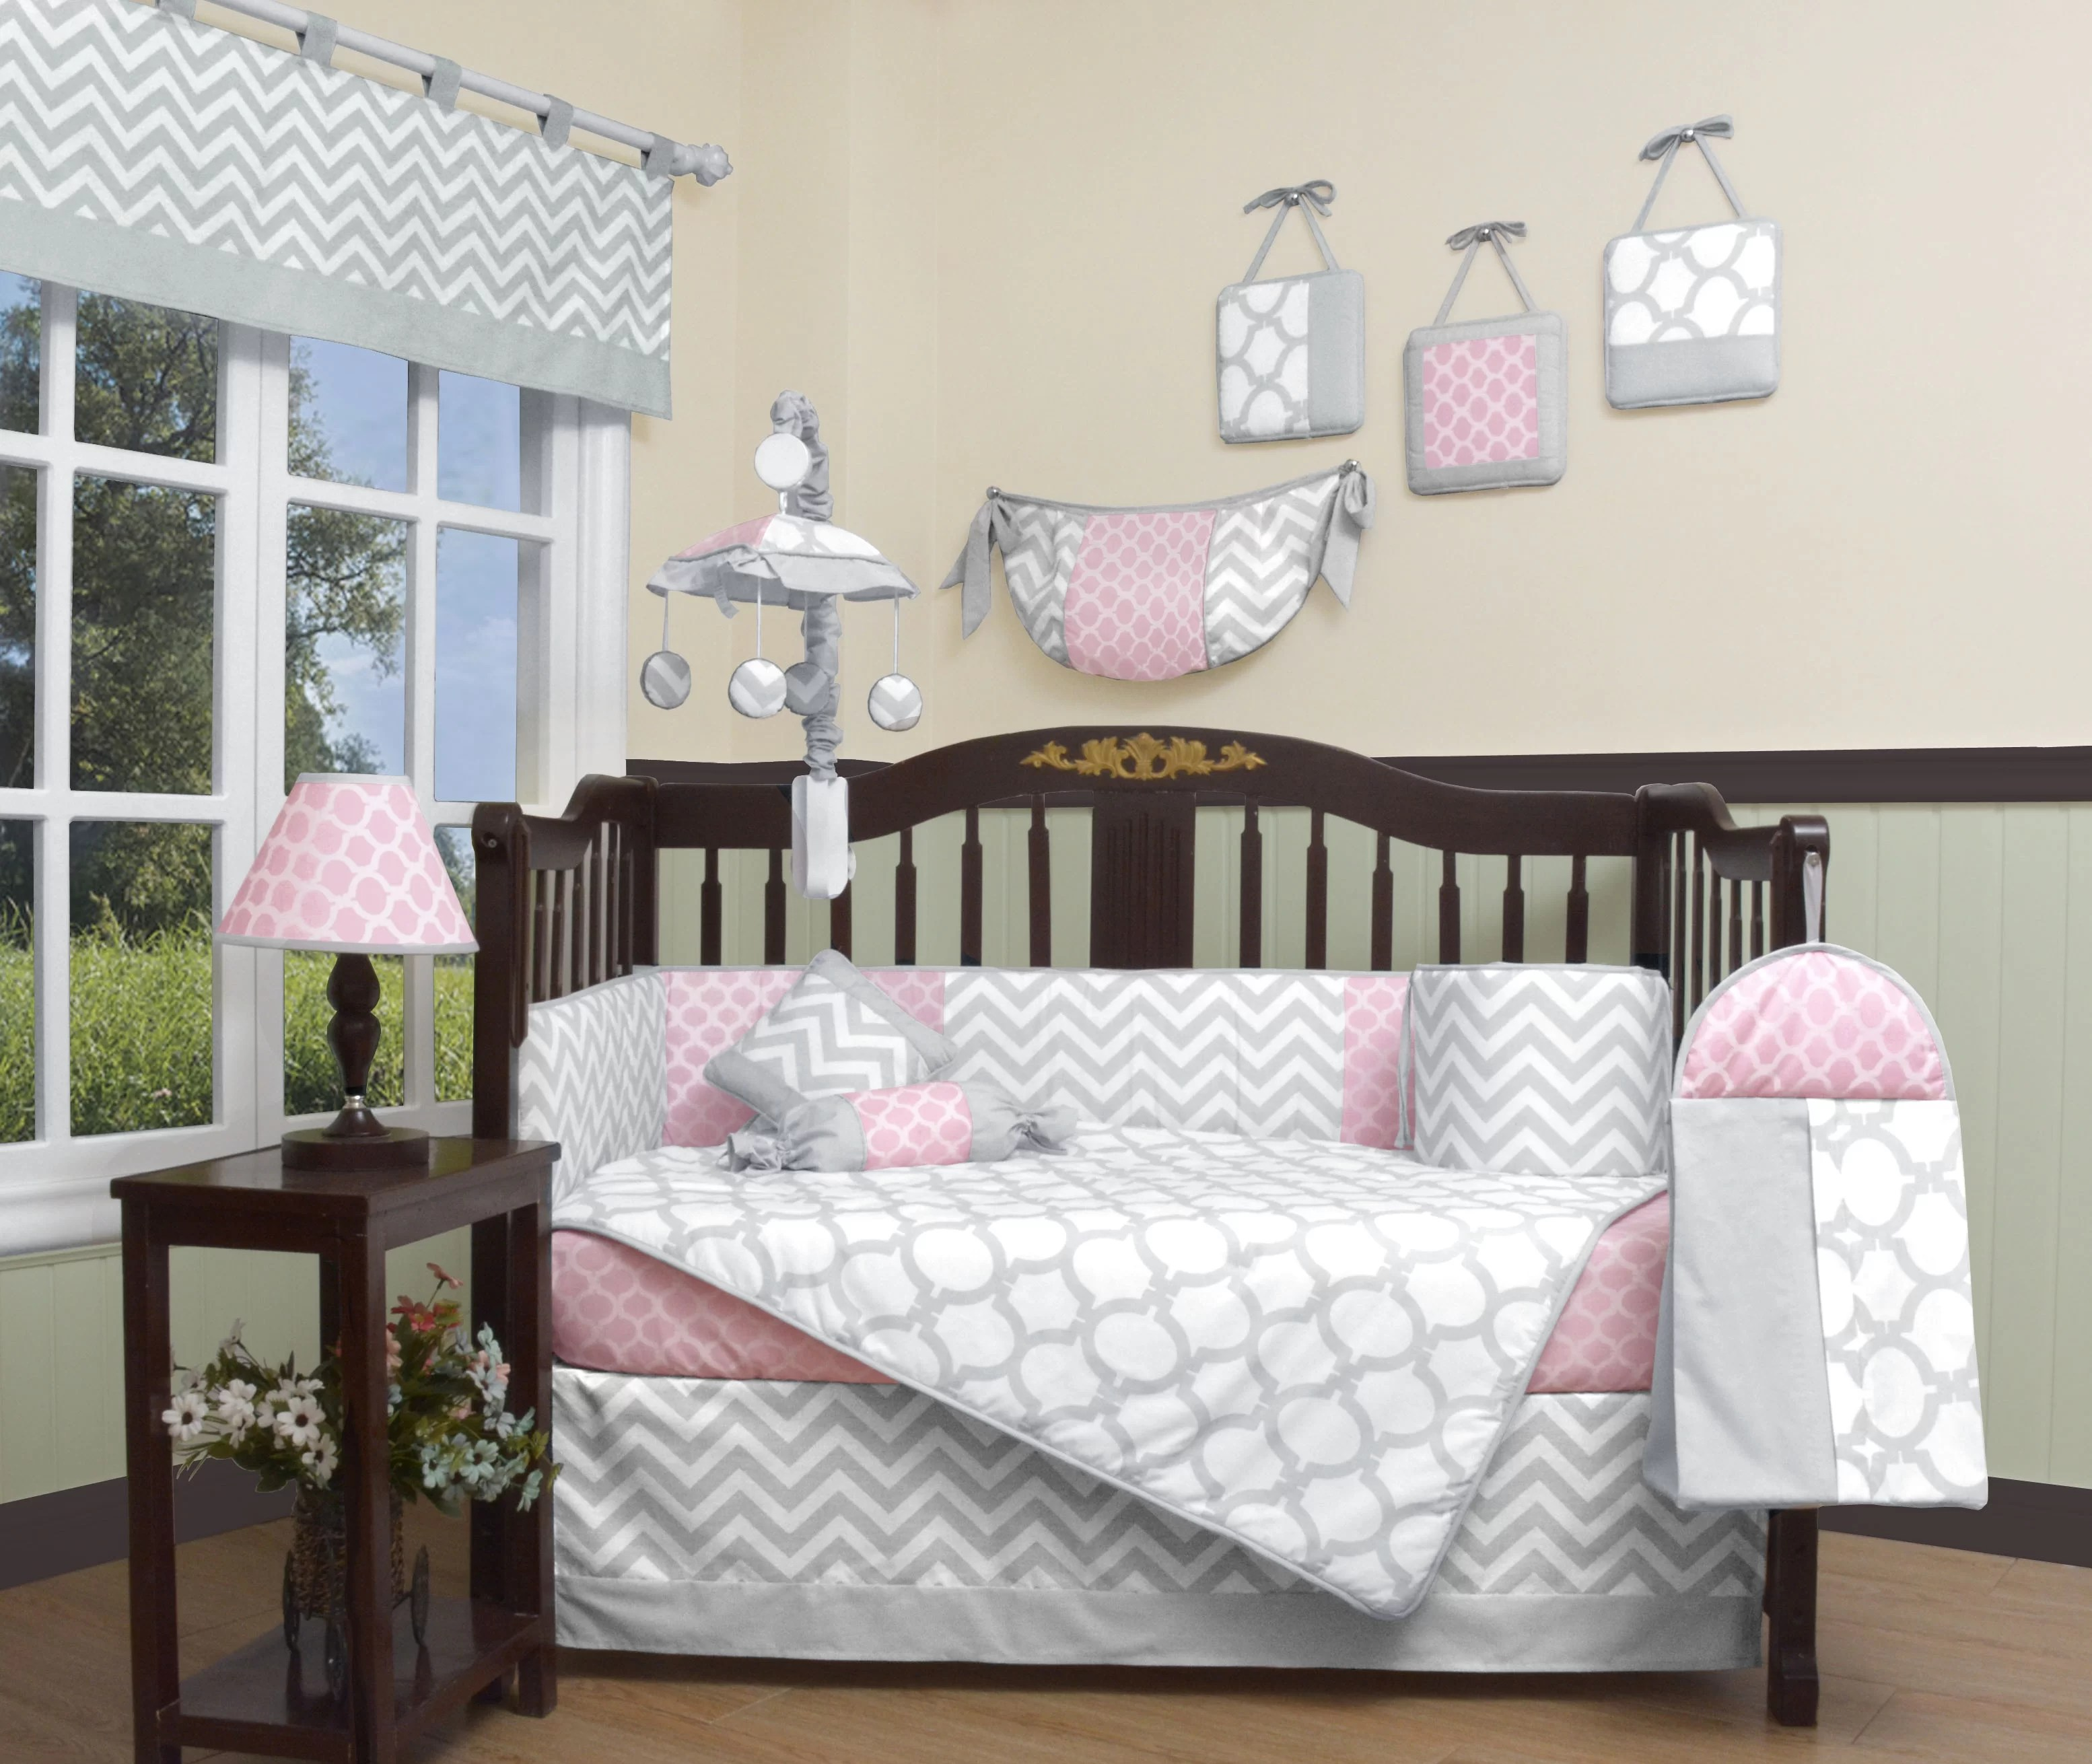 Baby Cot Sets Australia Crib Bedding You Ll Love Wayfair